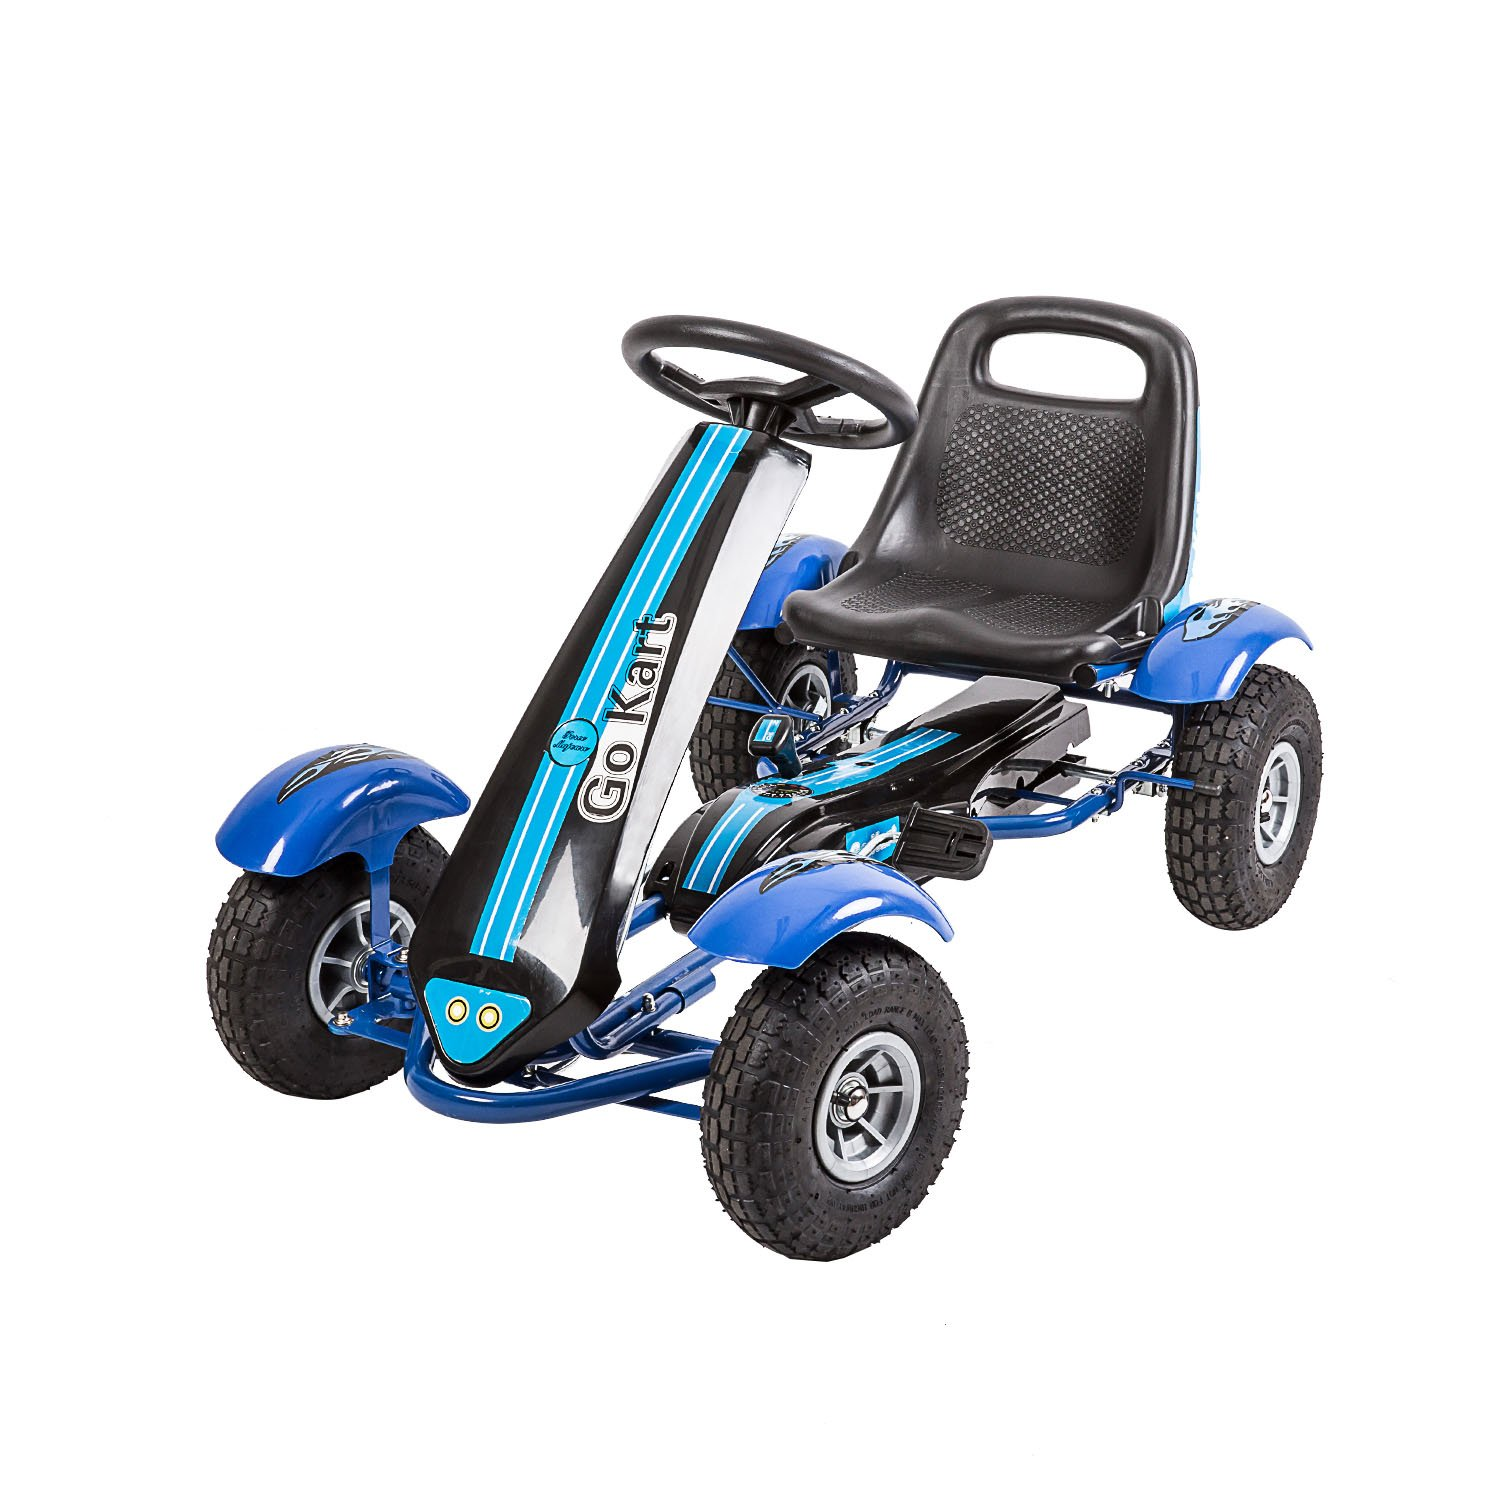 Kinbor Go Kart/Pedal Car,Pedal Powered Ride On Toys for Boys & Girls with Adjustable Seat Blue